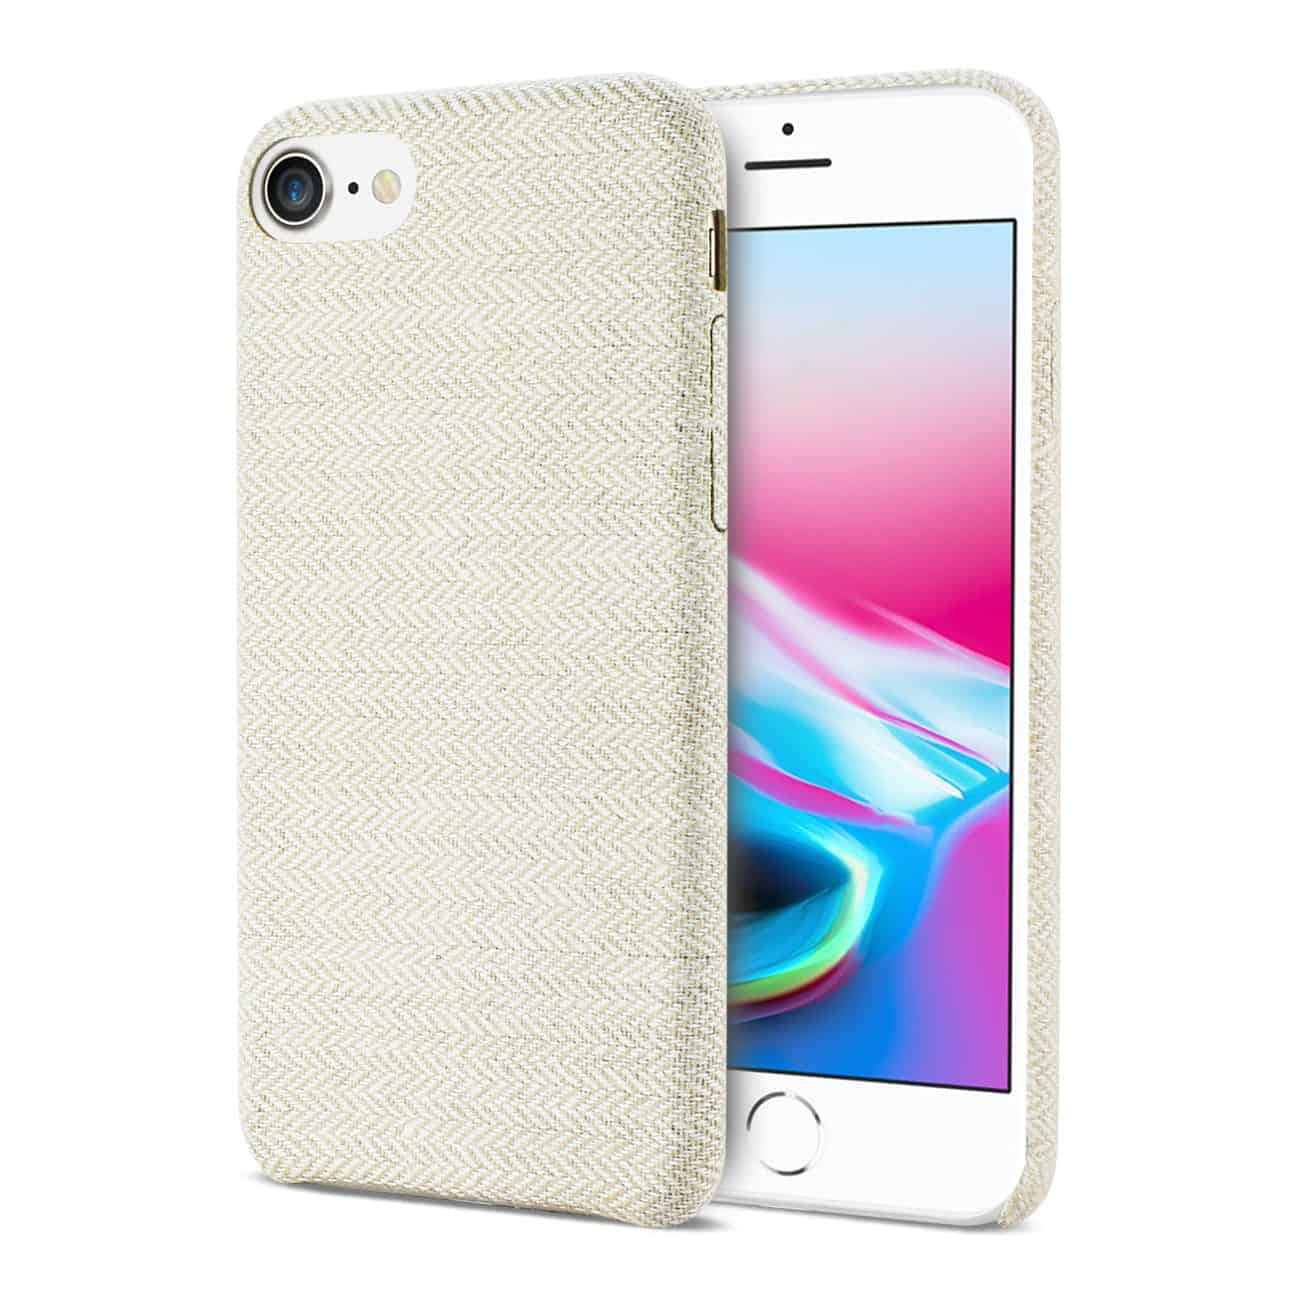 IPHONE 8 HERRINGBONE FABRIC IN BEIGE